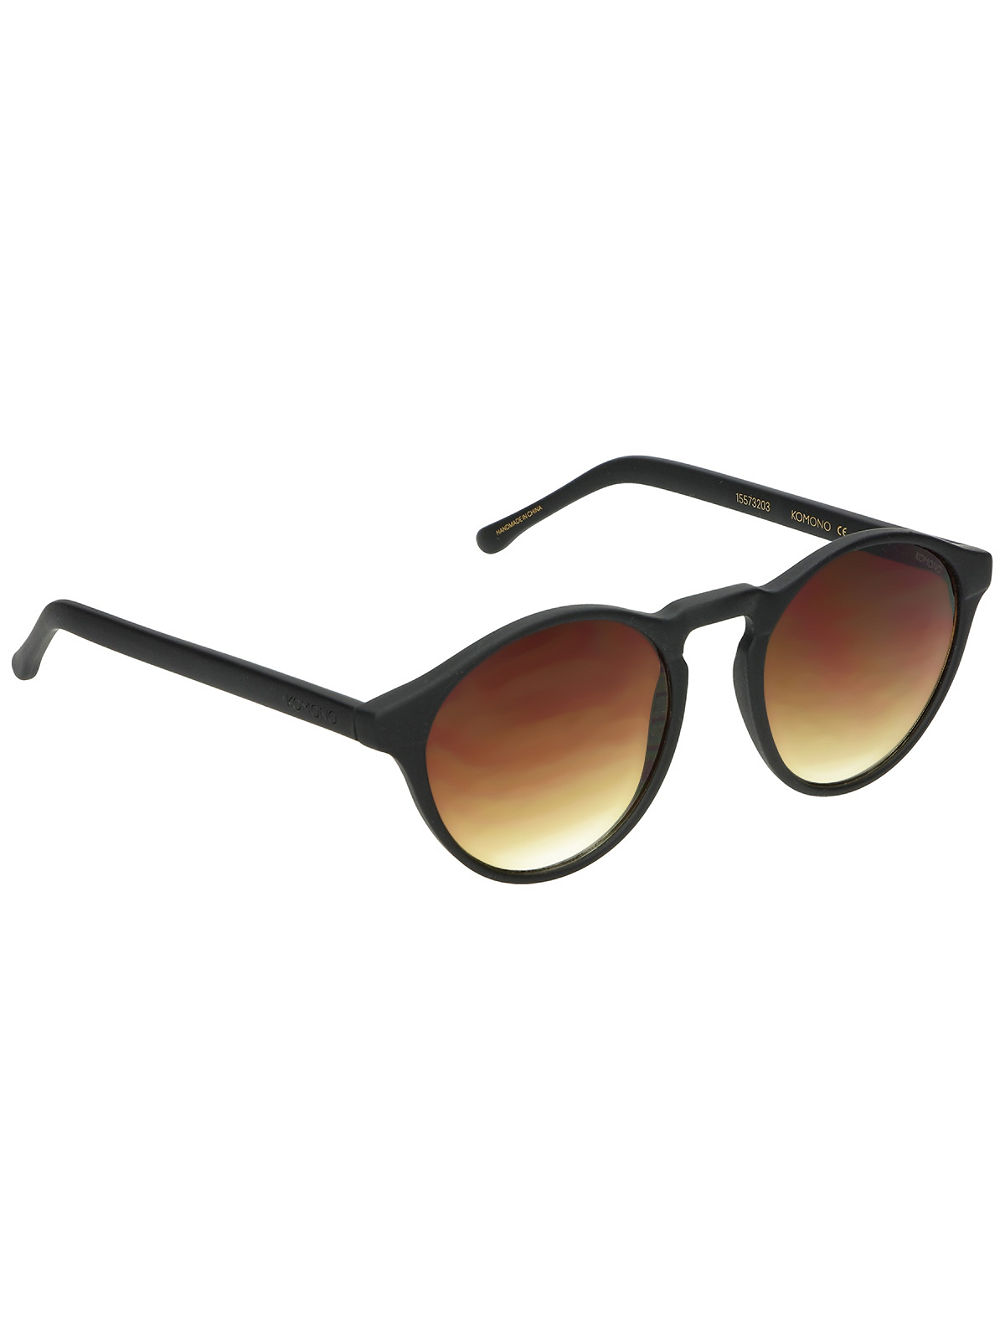 Devon Black Rubber Sonnenbrille